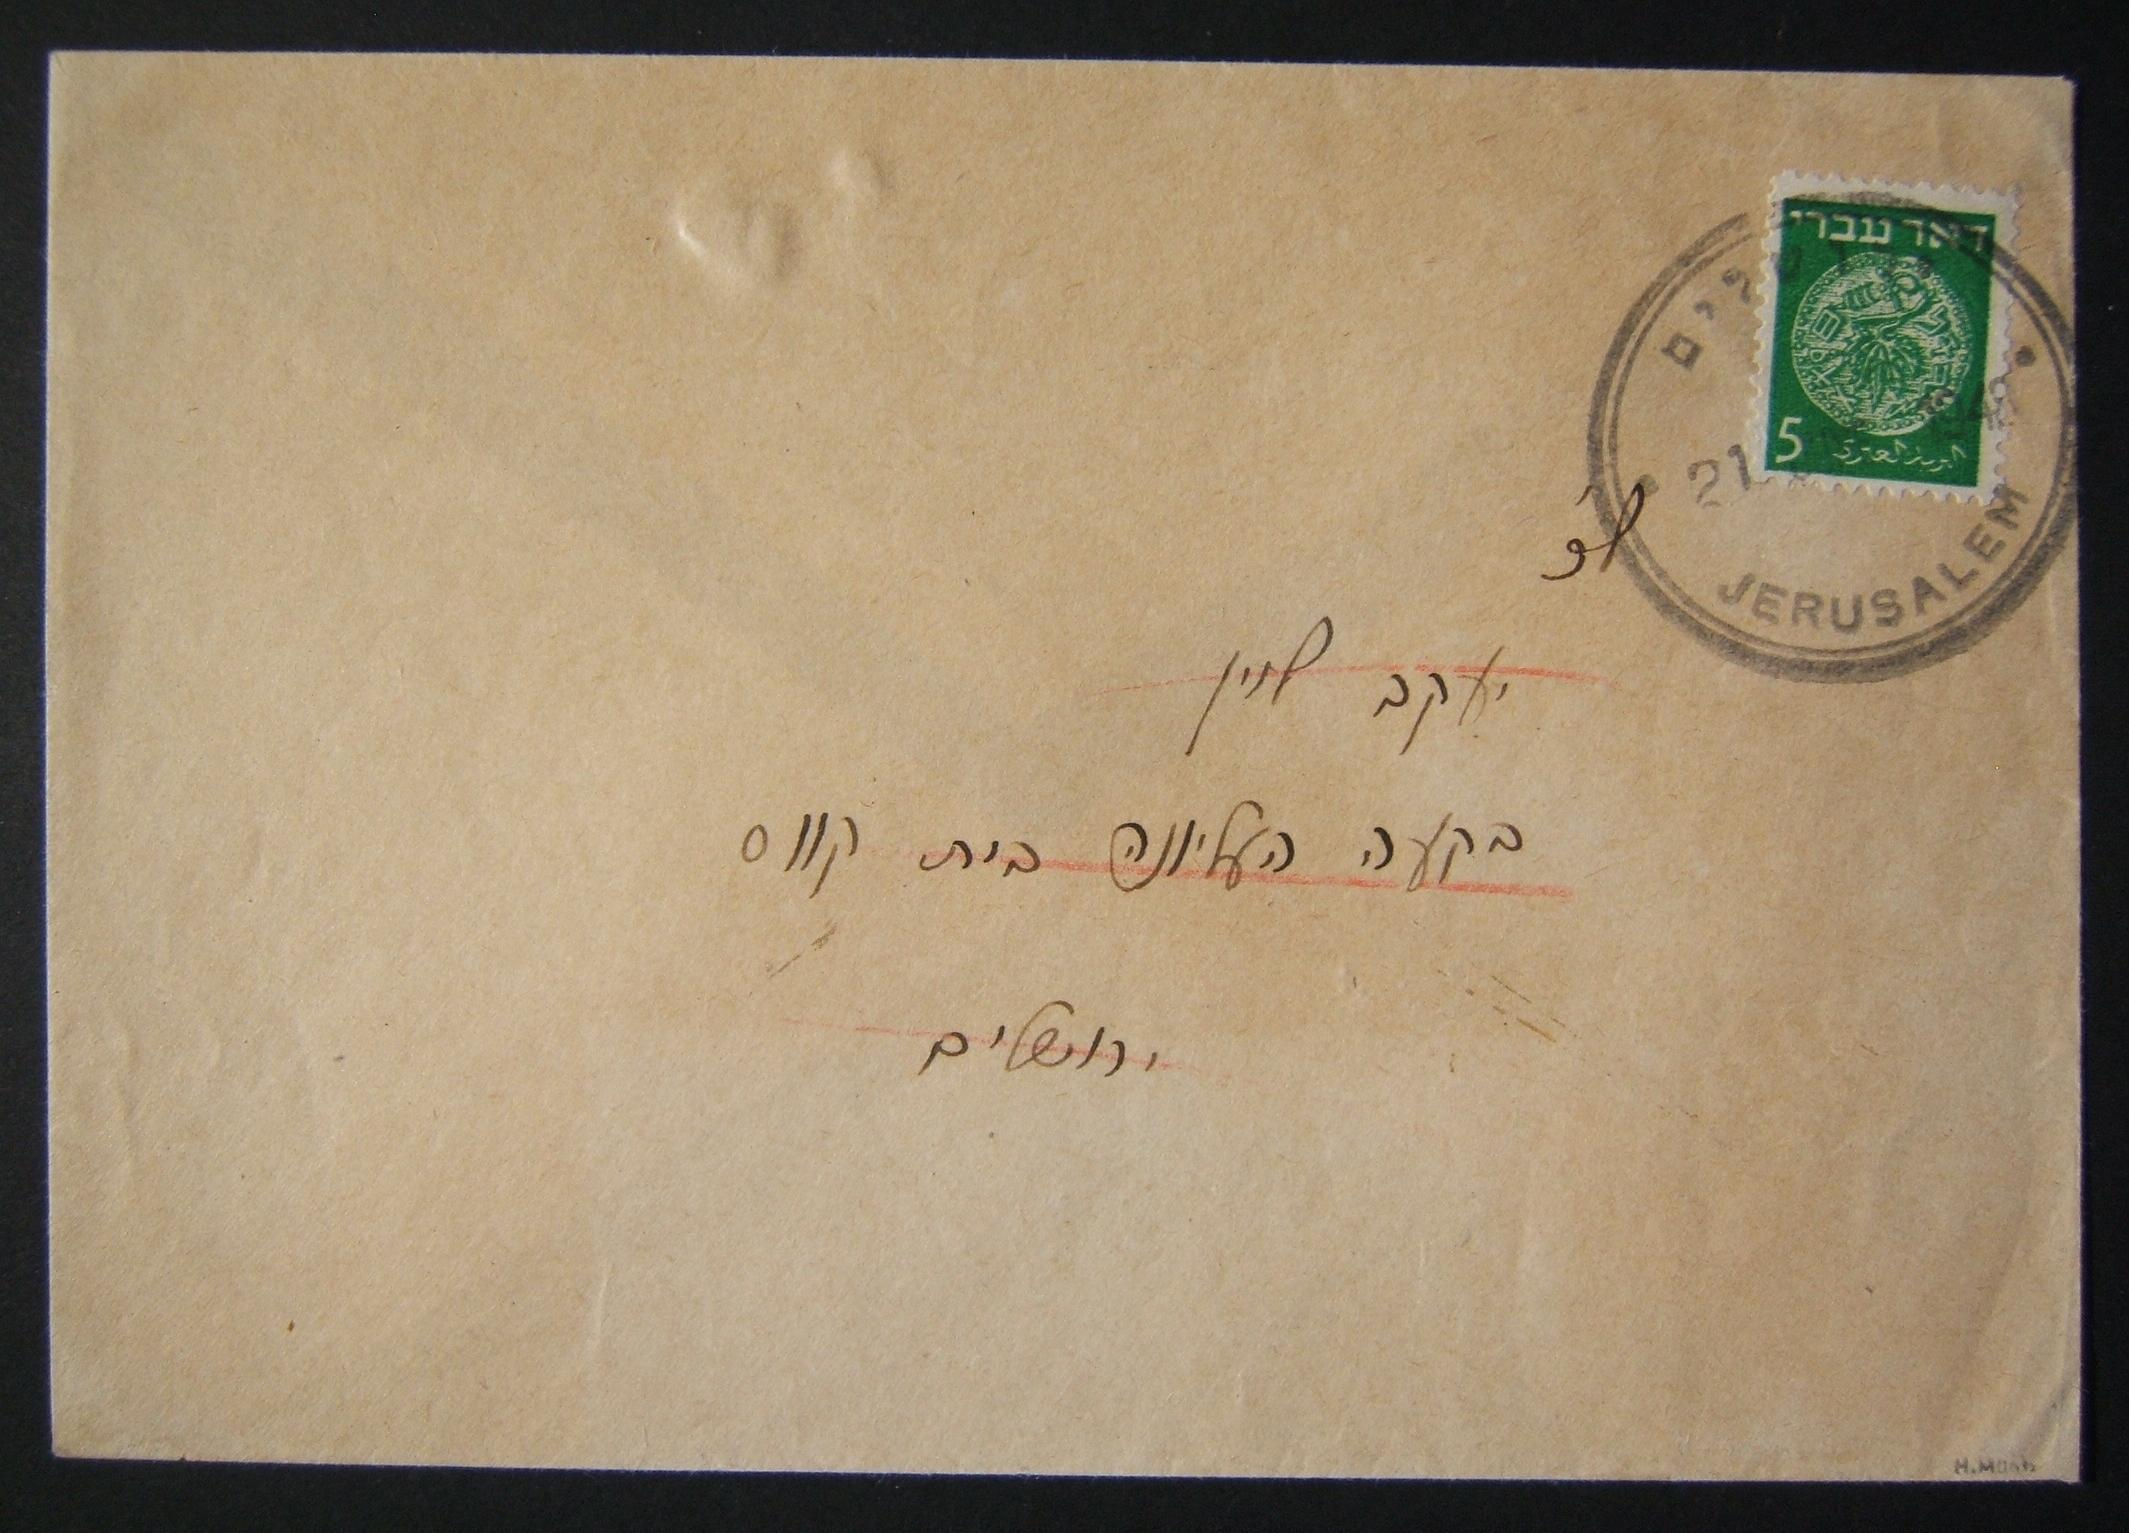 21-6-1948 Jerusalem Doar Ivri franked mail with Liberation postmark on 1st day of use